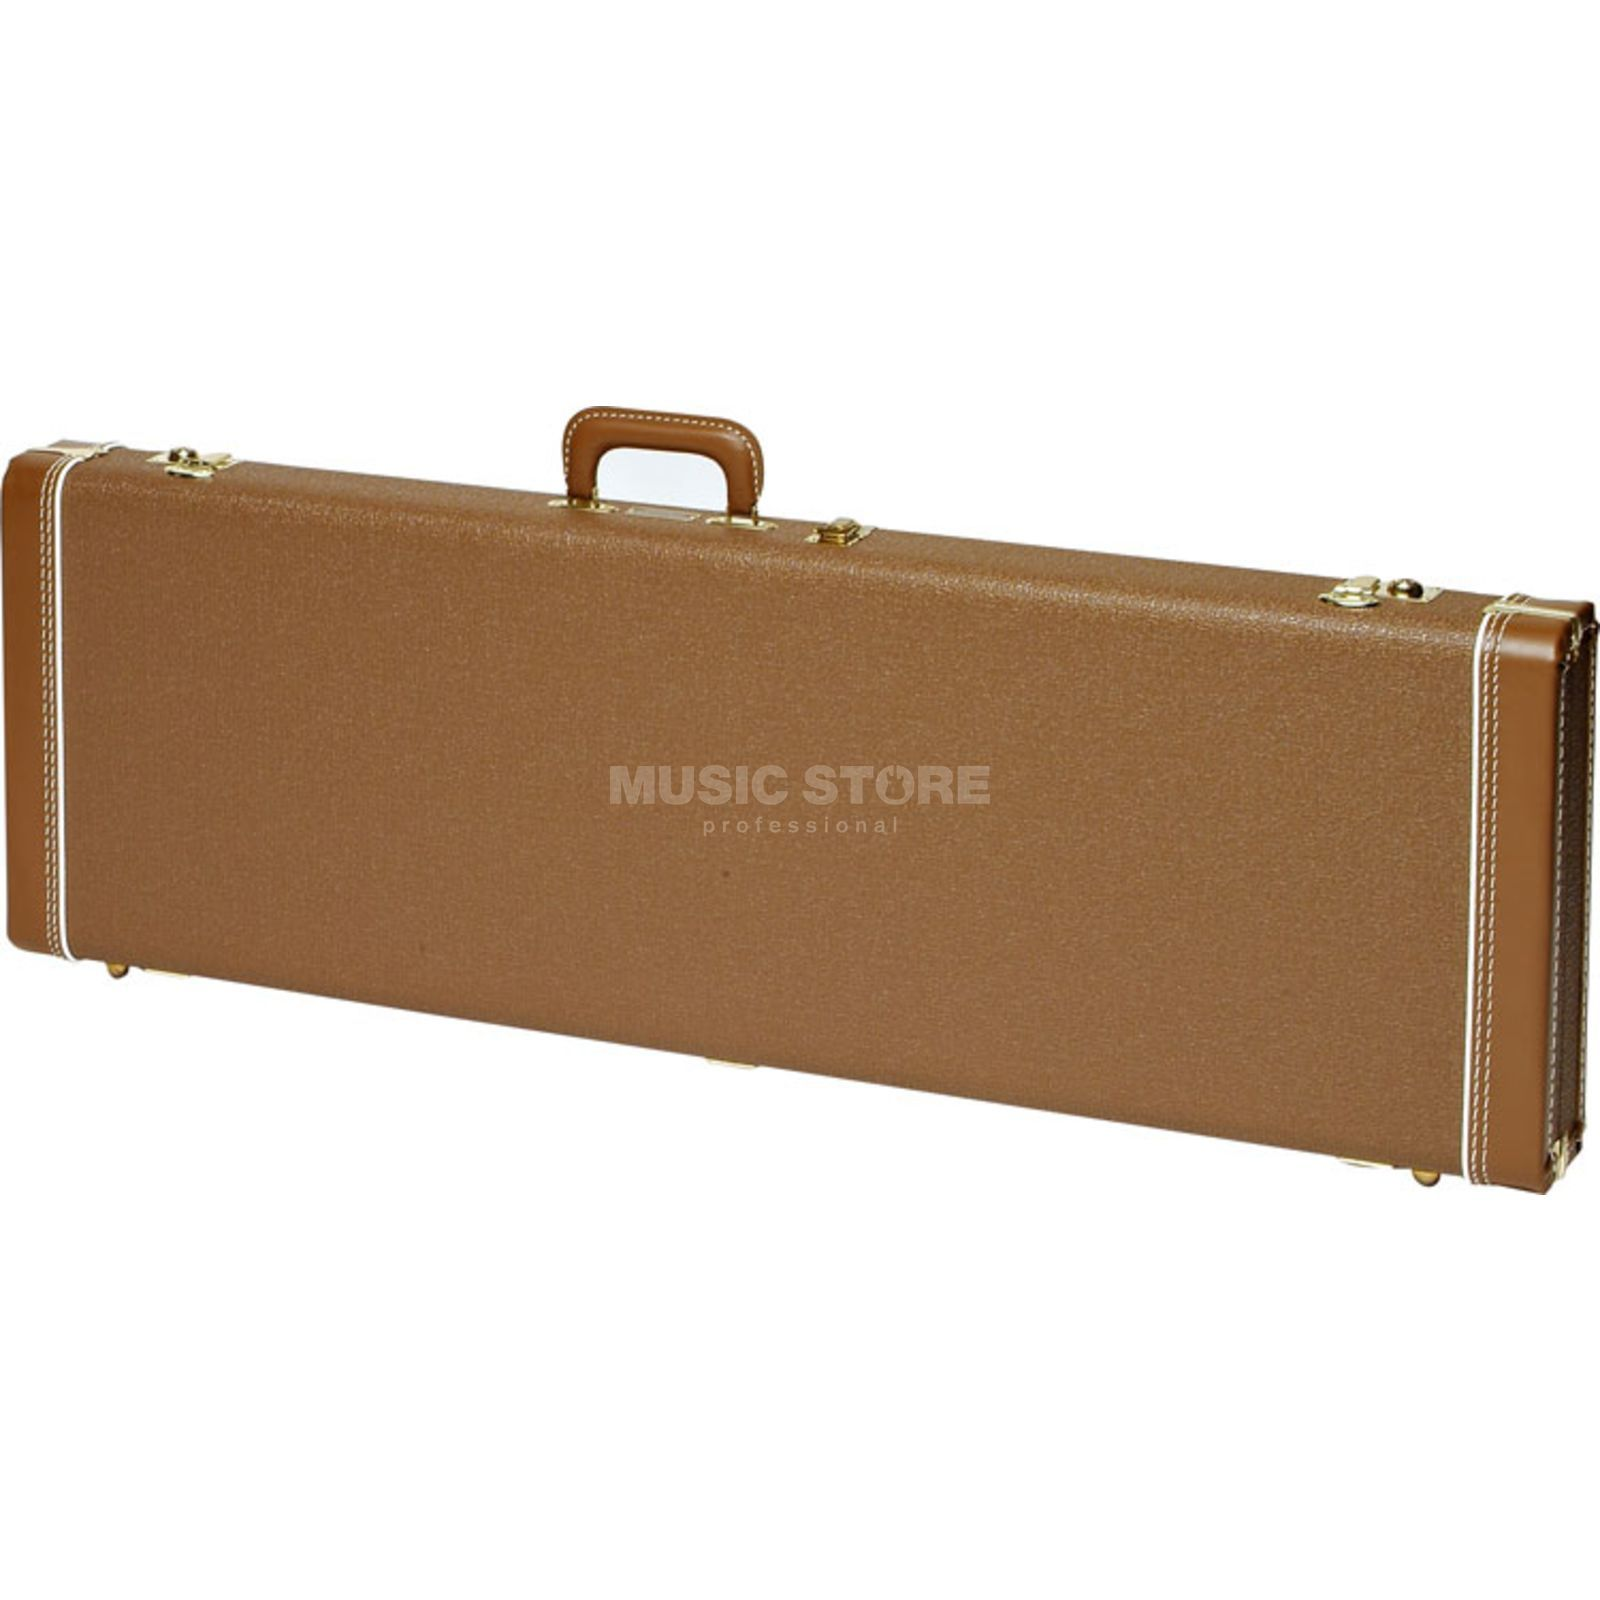 Fender Case MultiFit Hardshell J-Bass Brown with Gold Plush Zdjęcie produktu